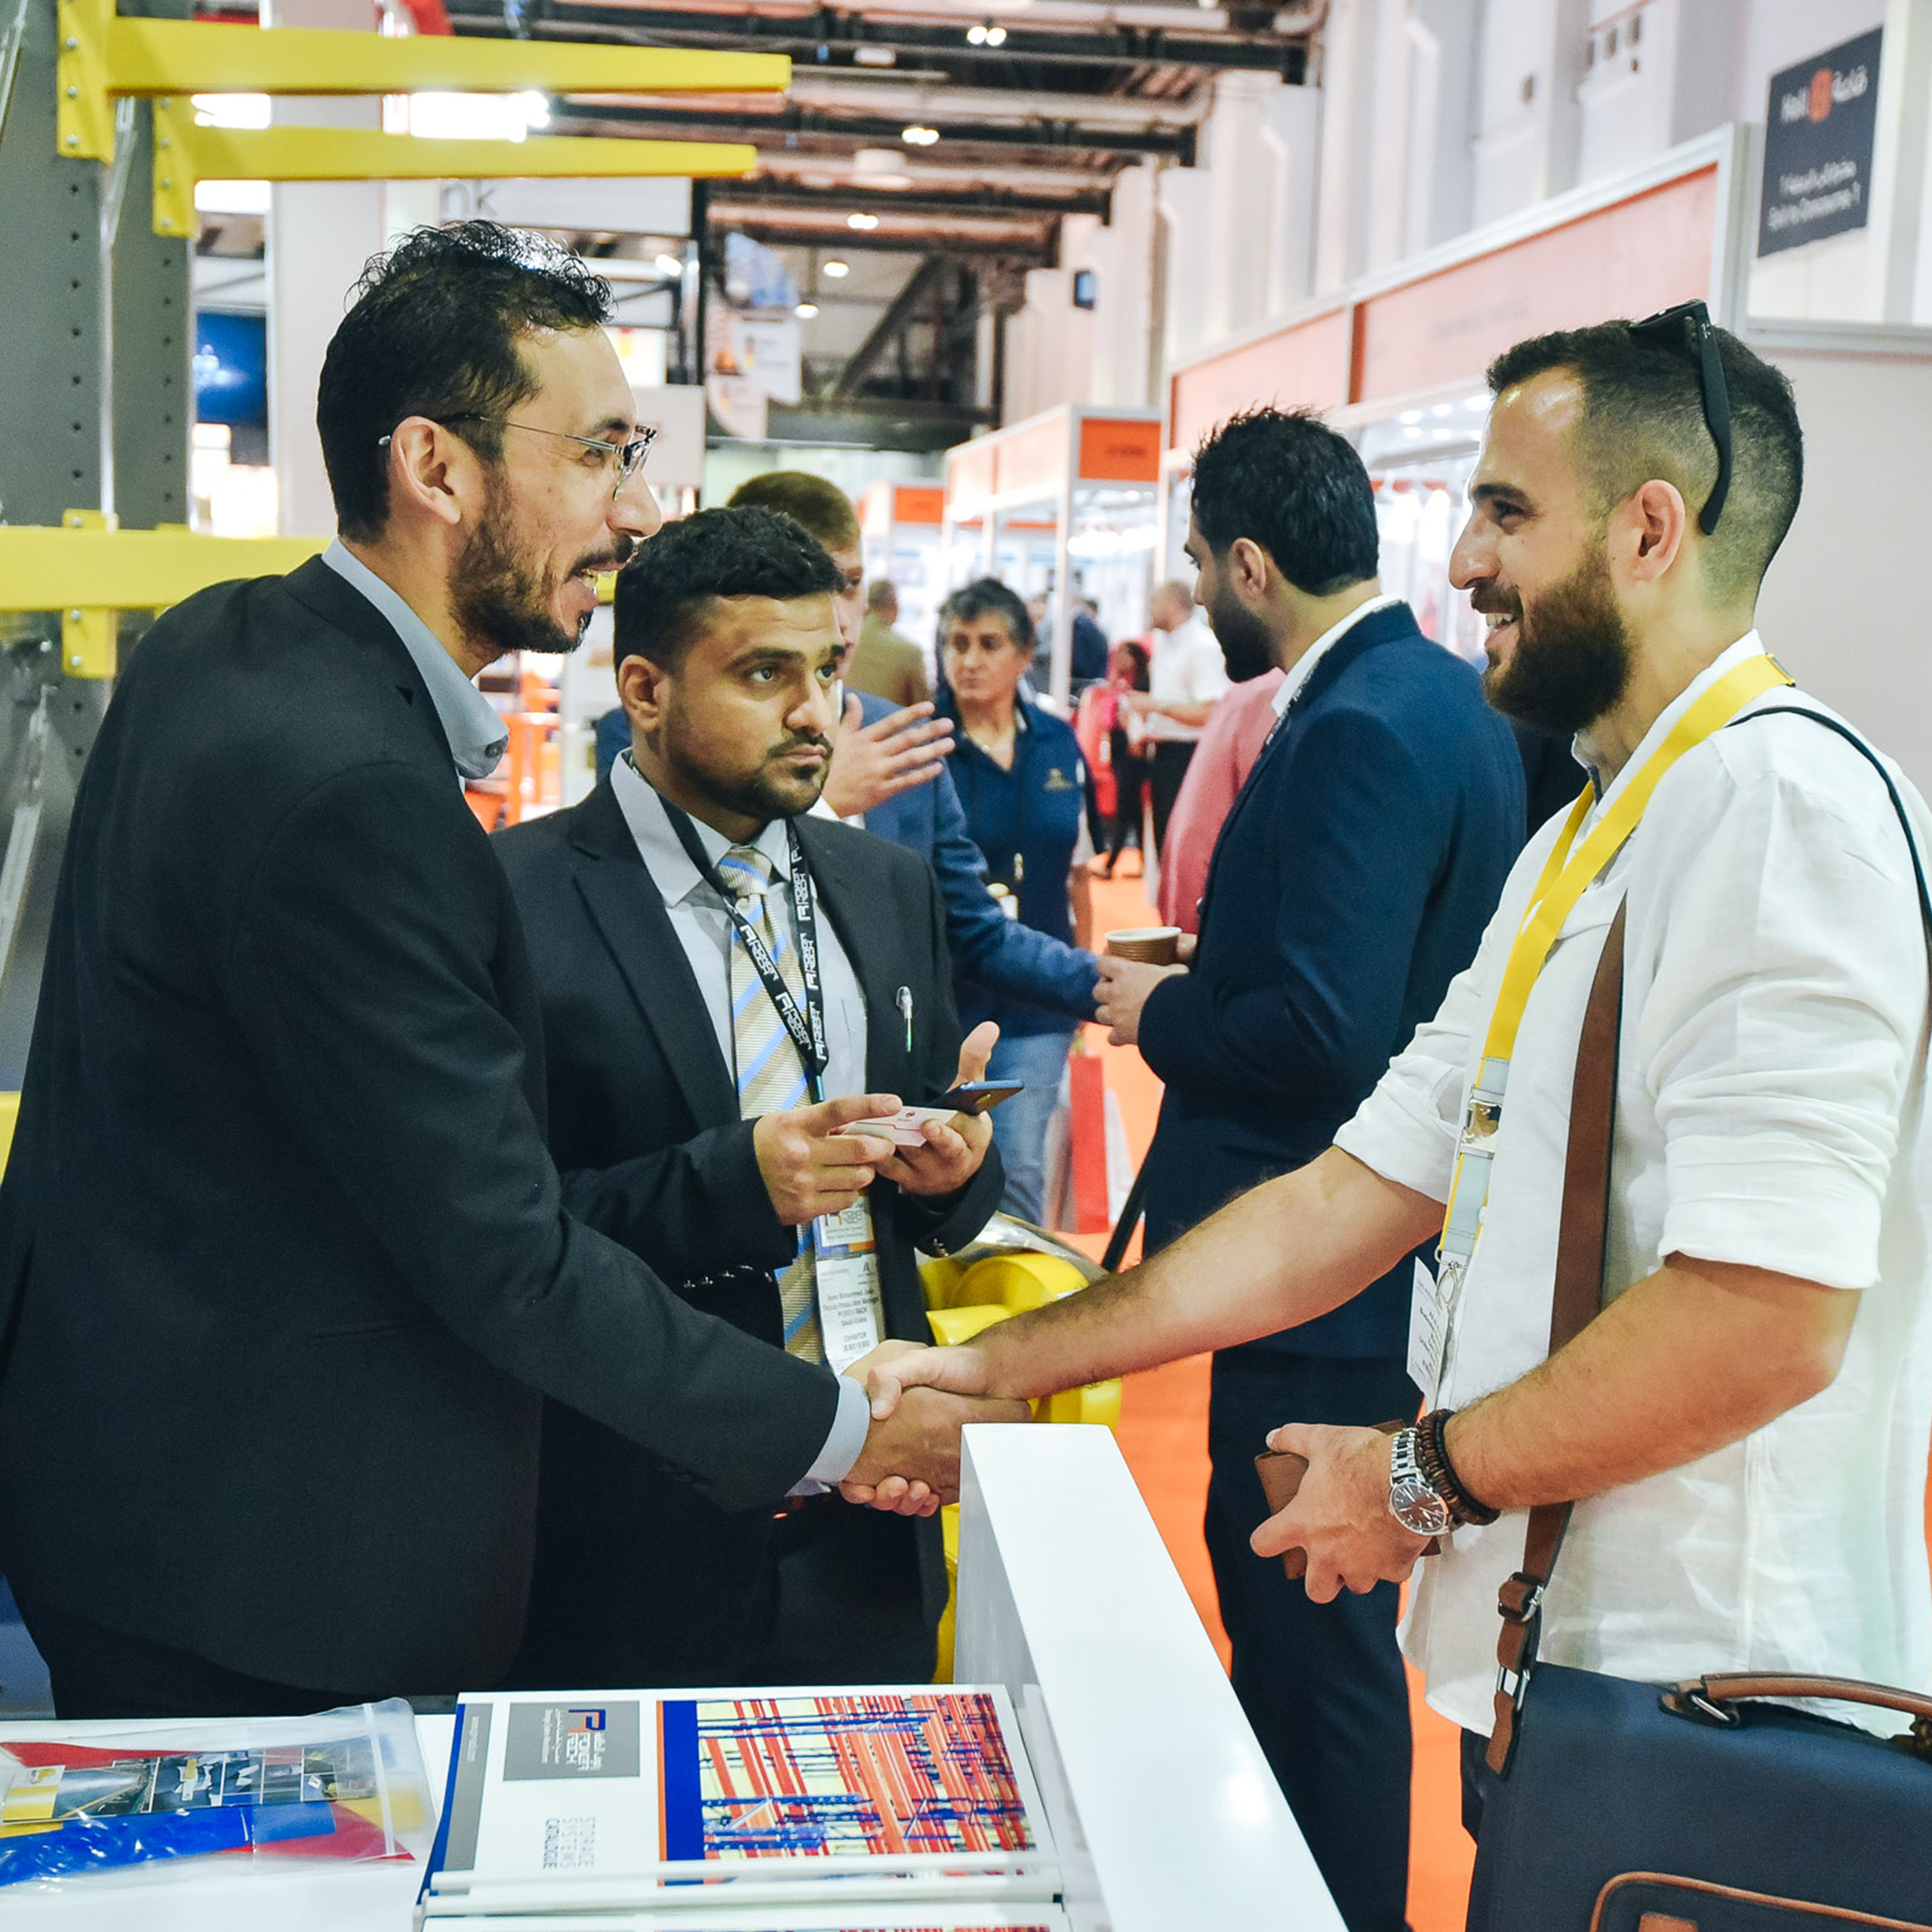 Materials Handling Middle East - Materials Handling Middle East 2019 racks up 12 percent yoy visitor growth for 10th edition